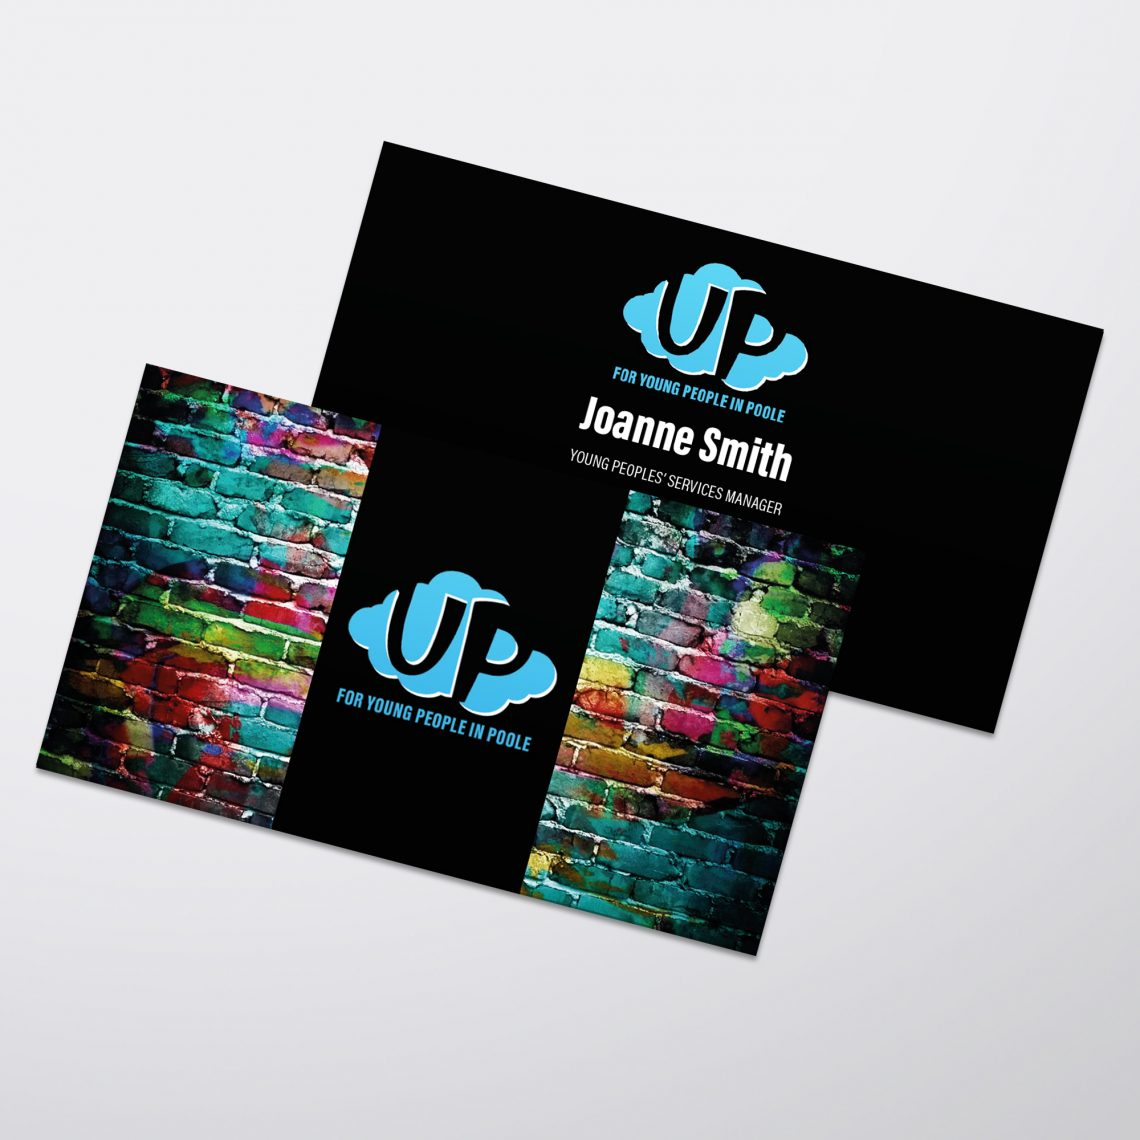 UP in Poole Business Card Design